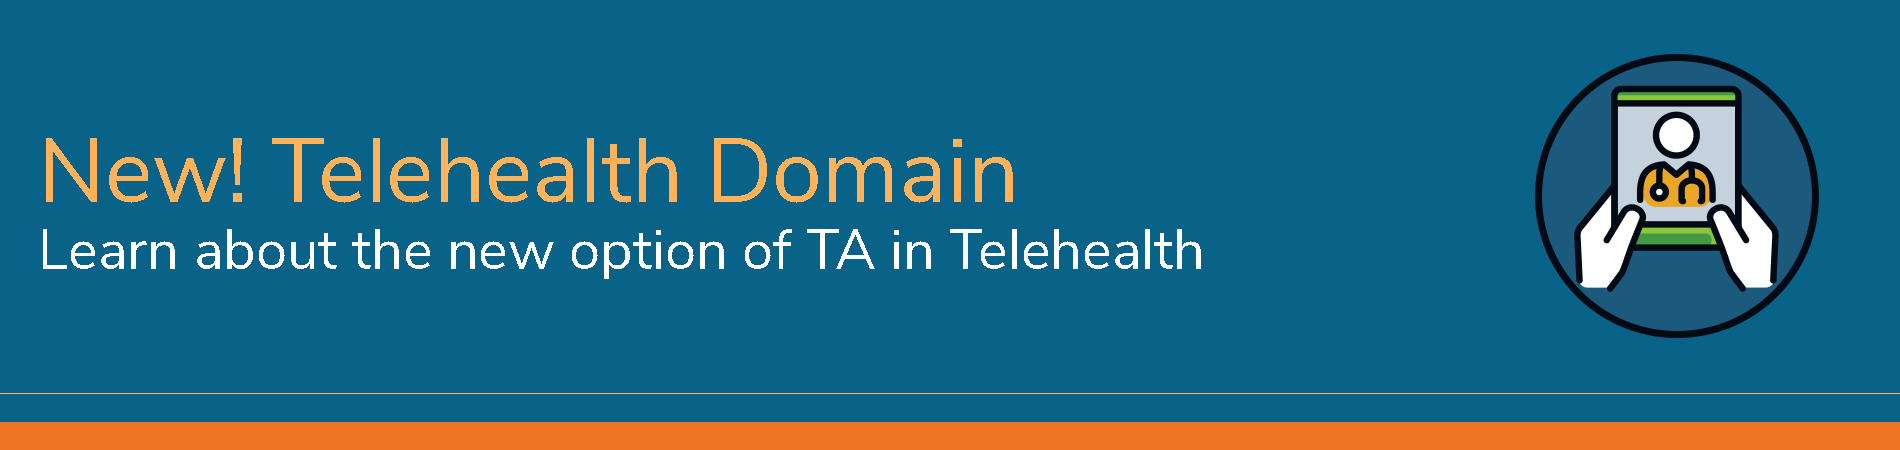 New! Telehealth Domain - Learn about the new option of TA in Telehealth